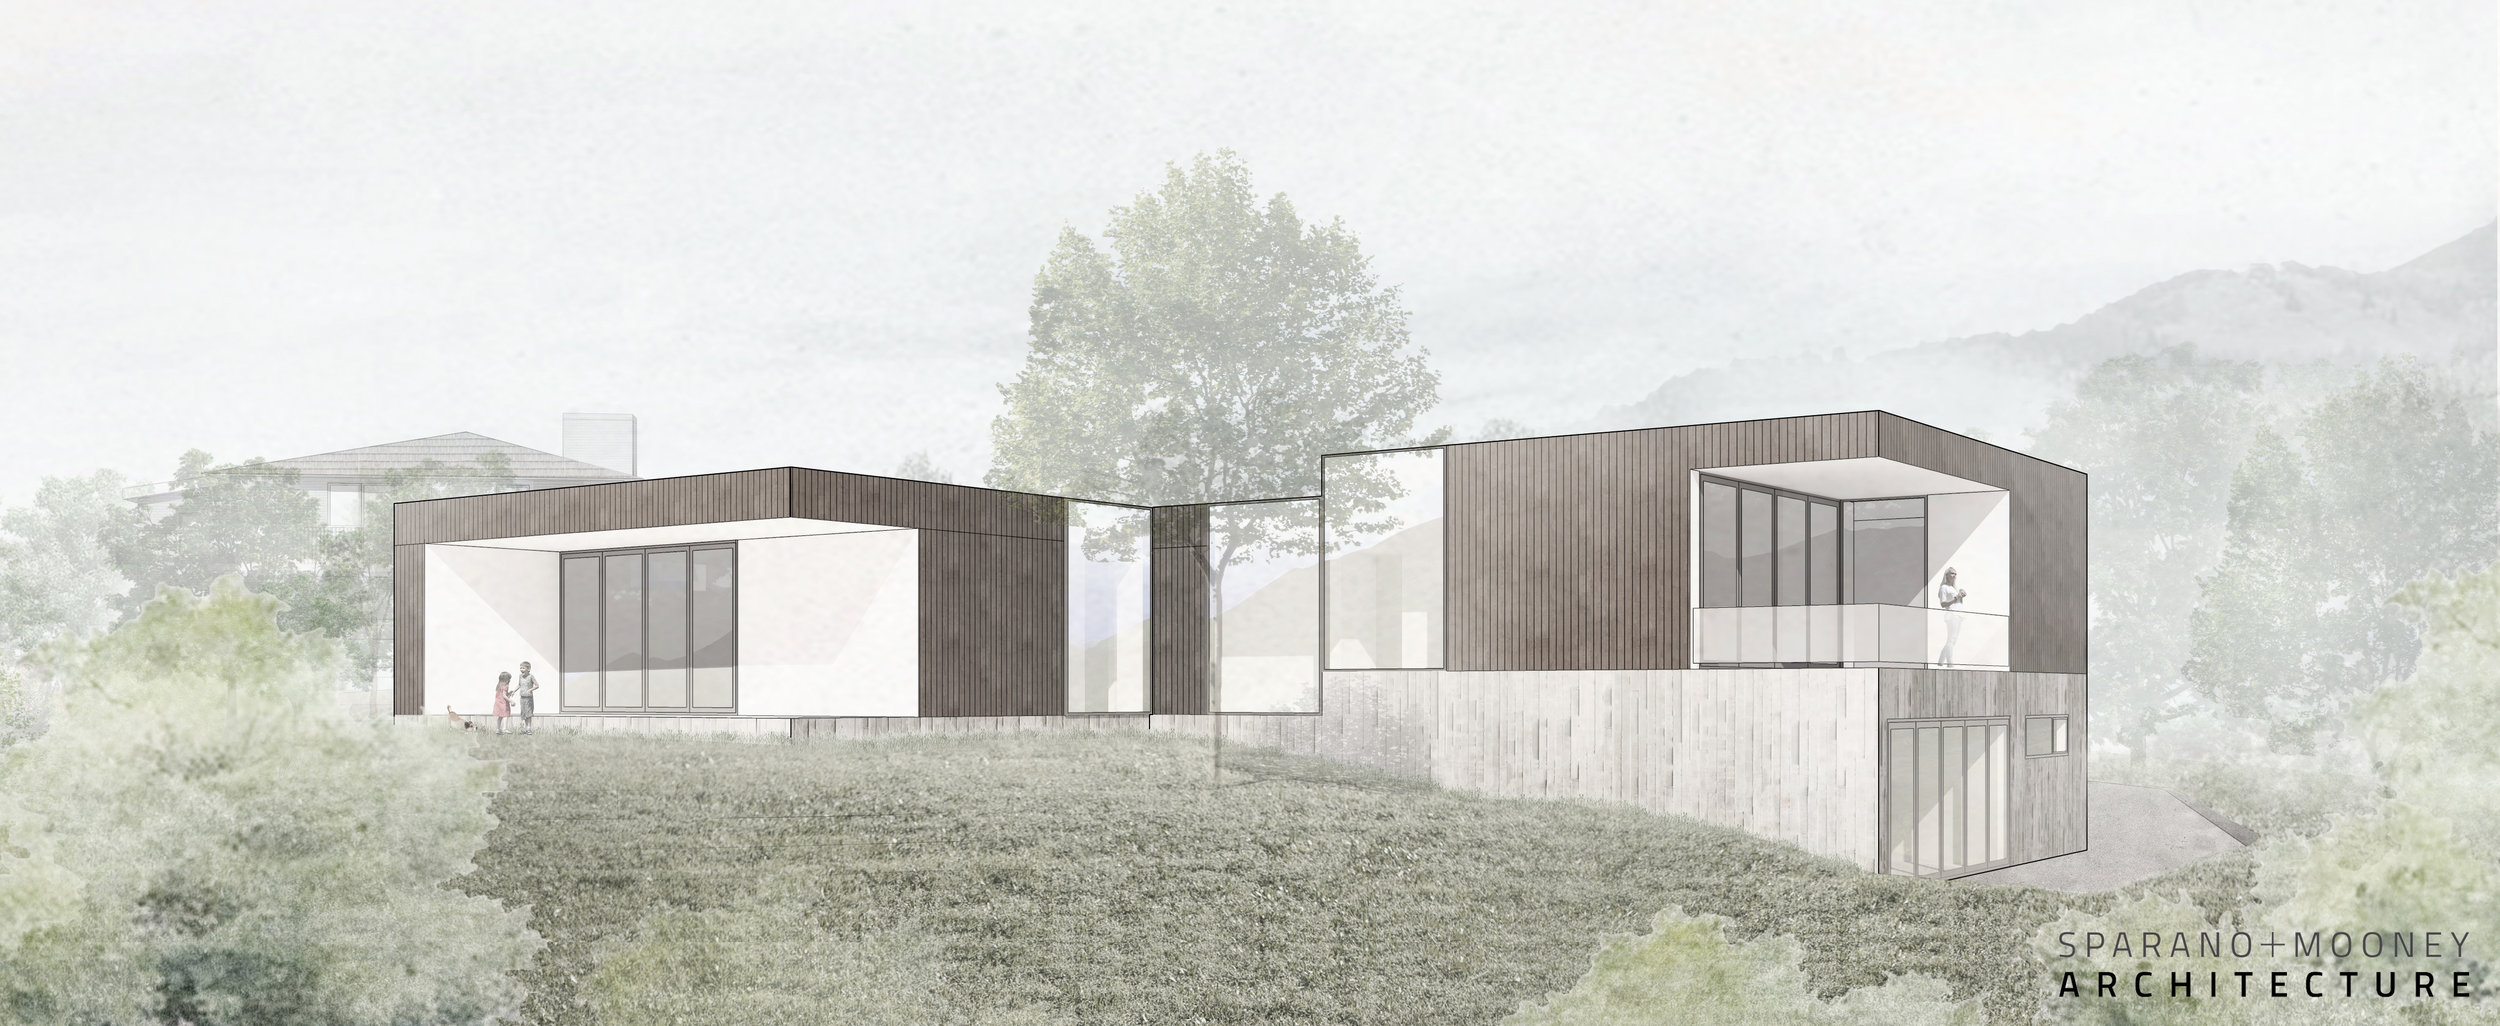 Sparano + Mooney Architecture_Shirecliff Residence_South Perspective.jpg